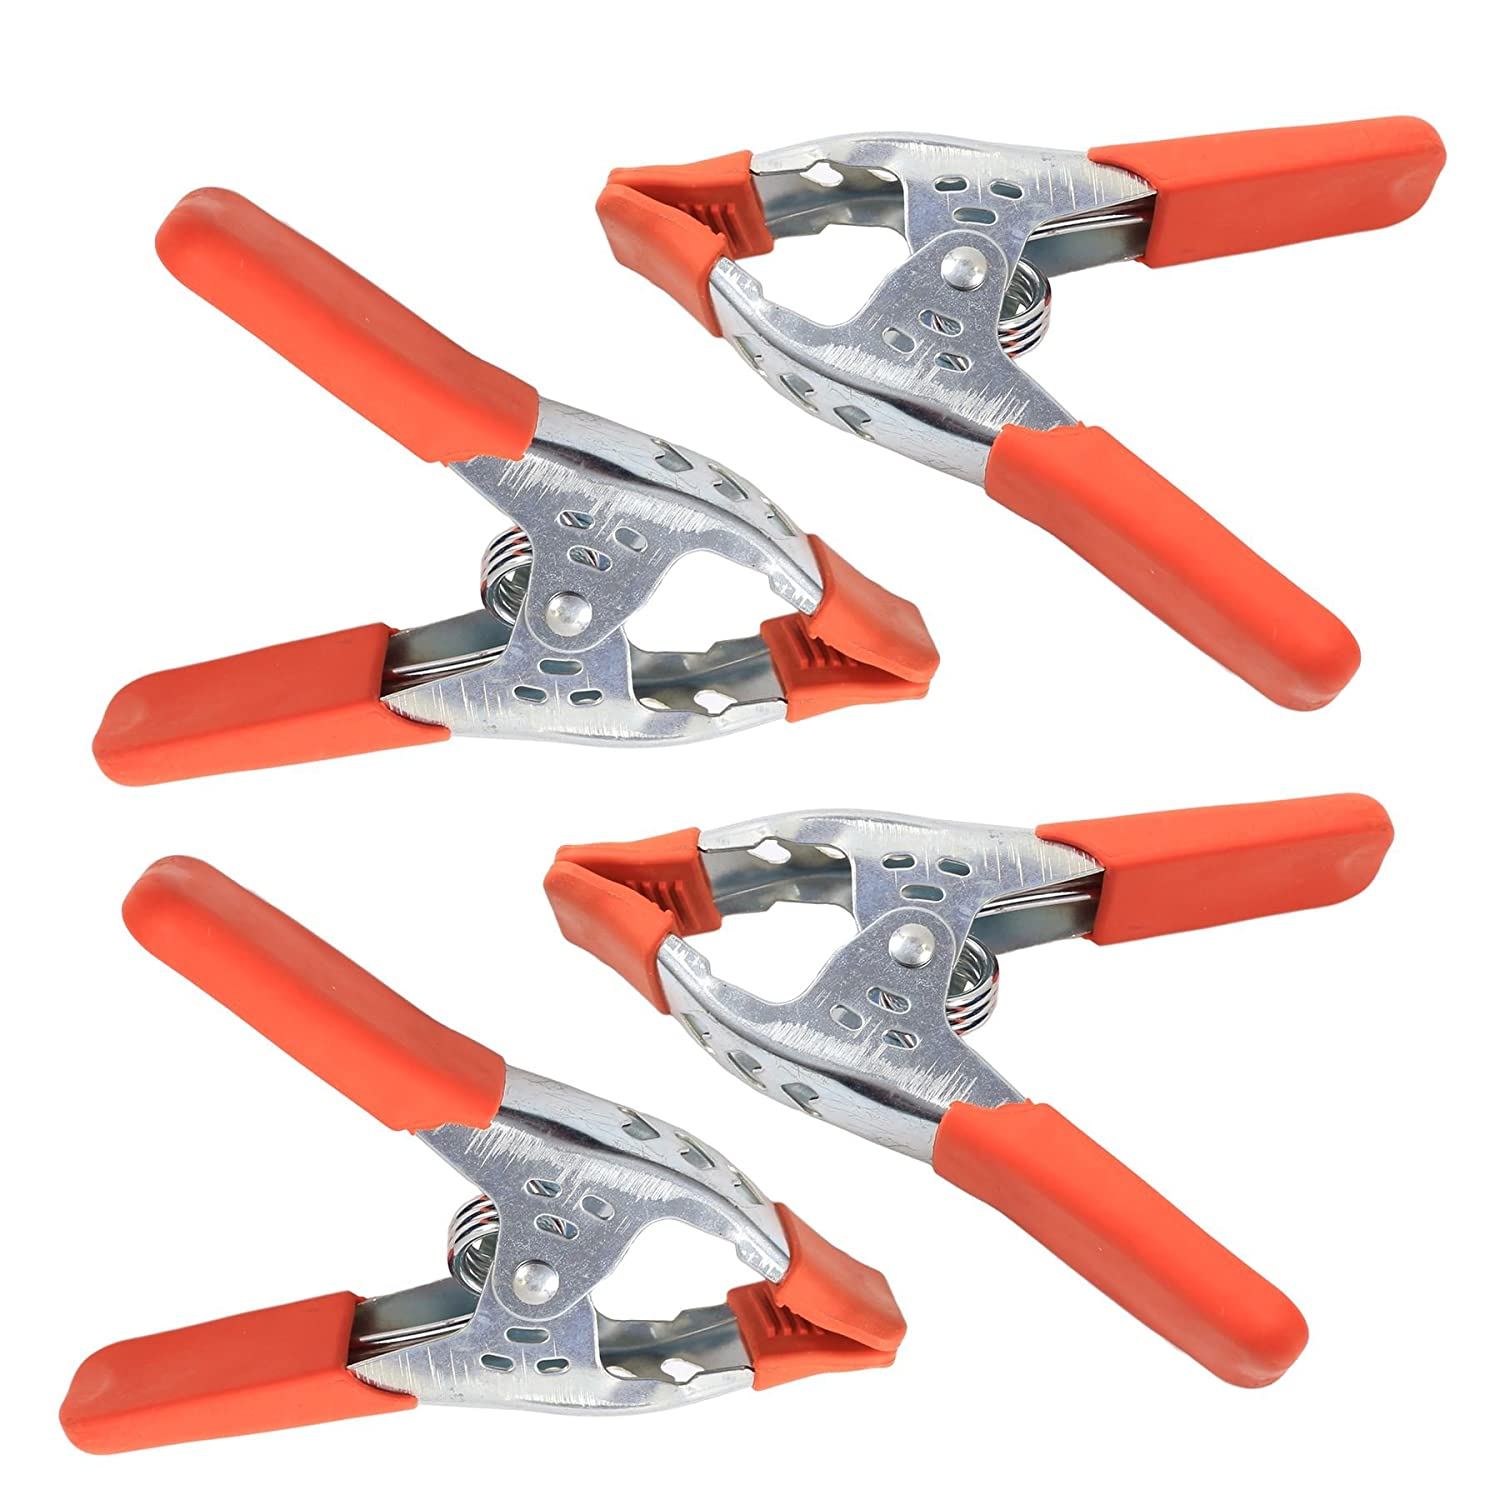 4x Large 6' Metal Spring Clamps - Heavy Duty Strong Clips With Rubber Grips White Hinge